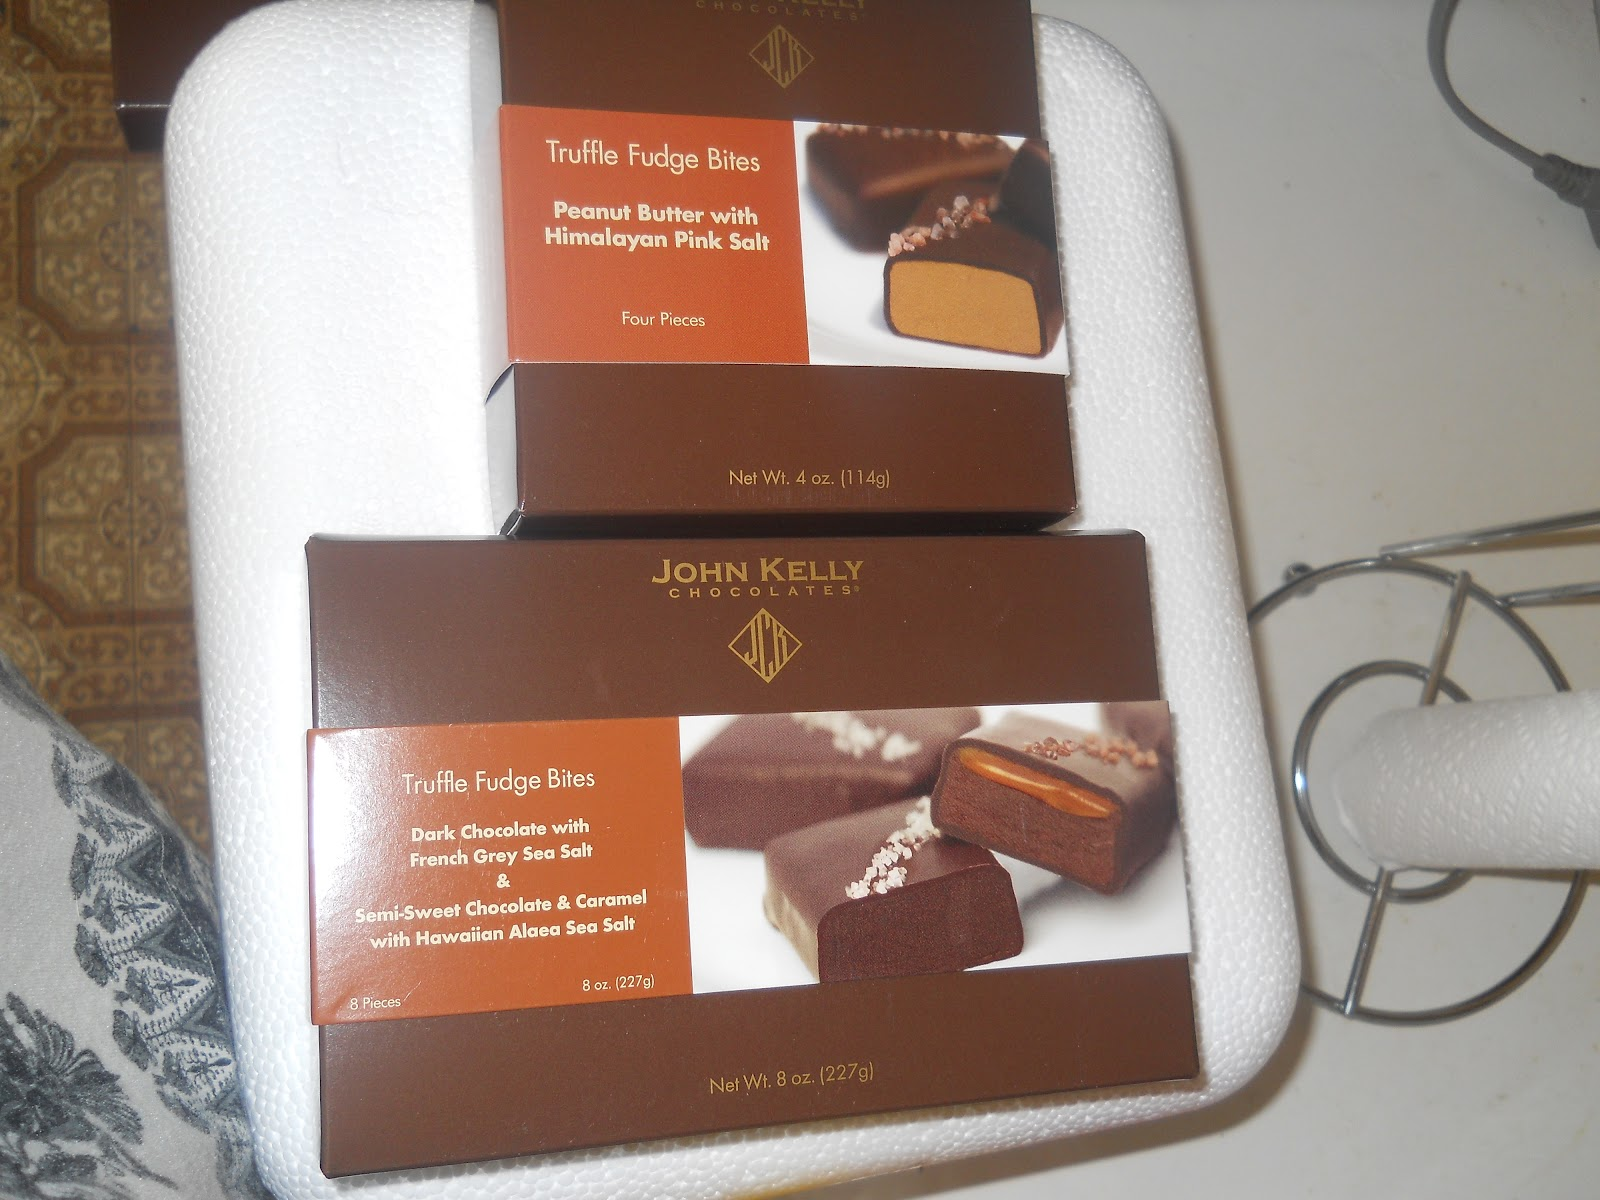 Heck Of A Bunch: John Kelly Chocolates - Review and Giveaway